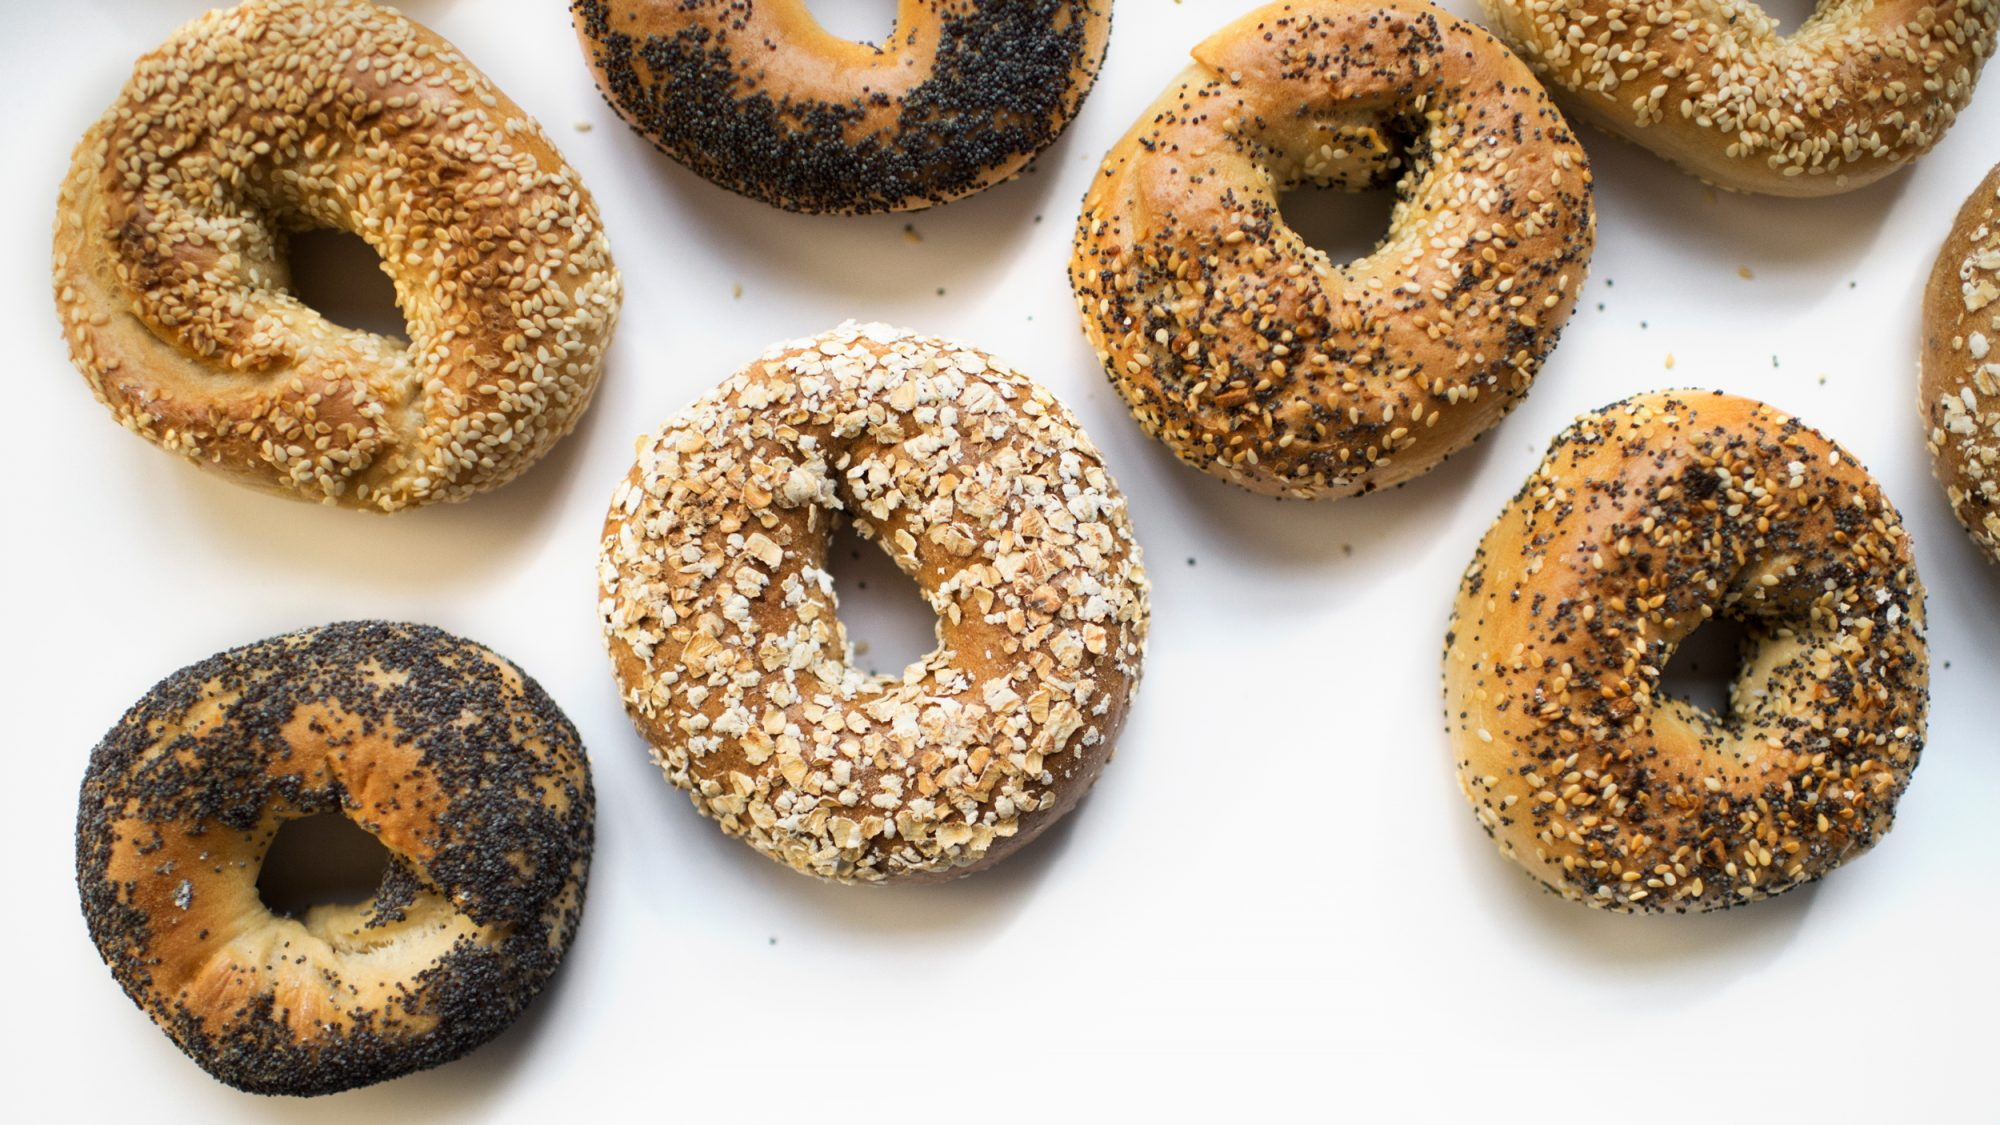 New York City: Black Seed Bagels